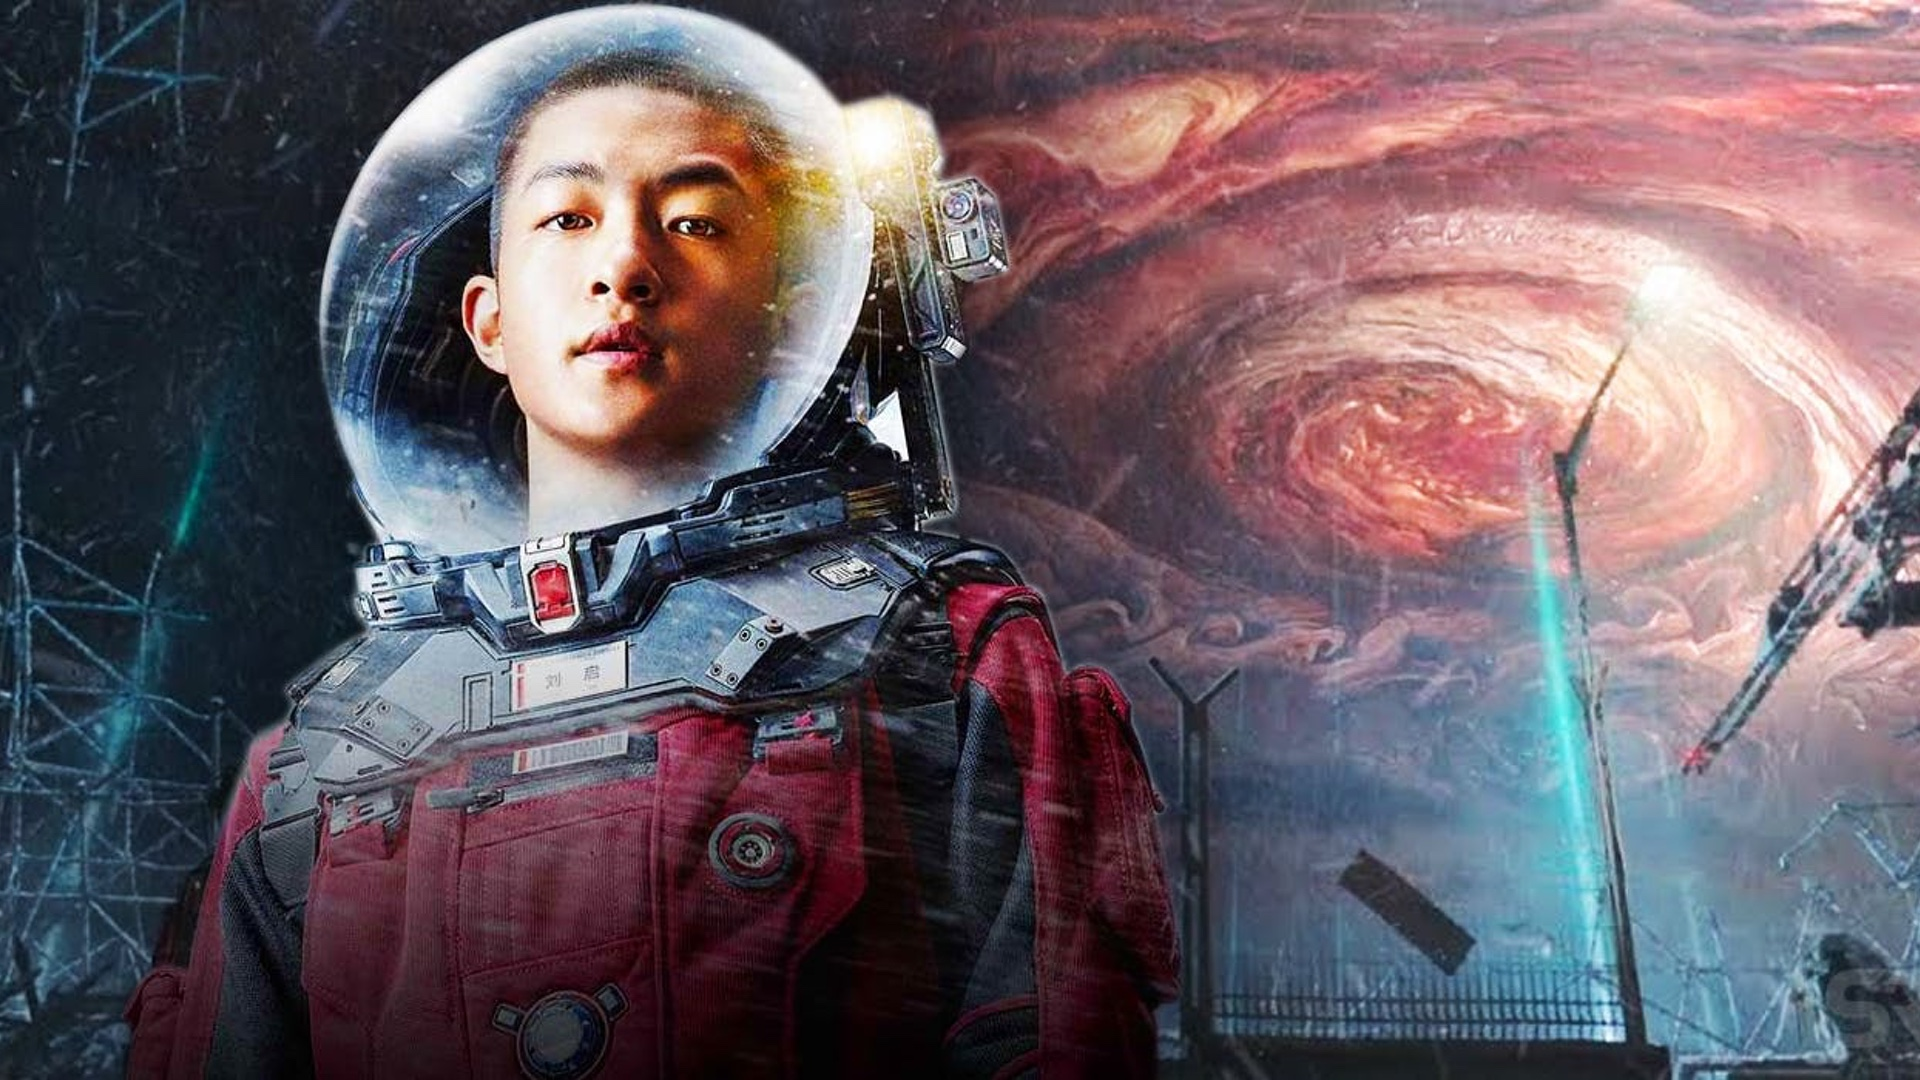 Awesome New Trailer Released For The Chinese Sci-Fi Epic THE WANDERING EARTH-social.jpg